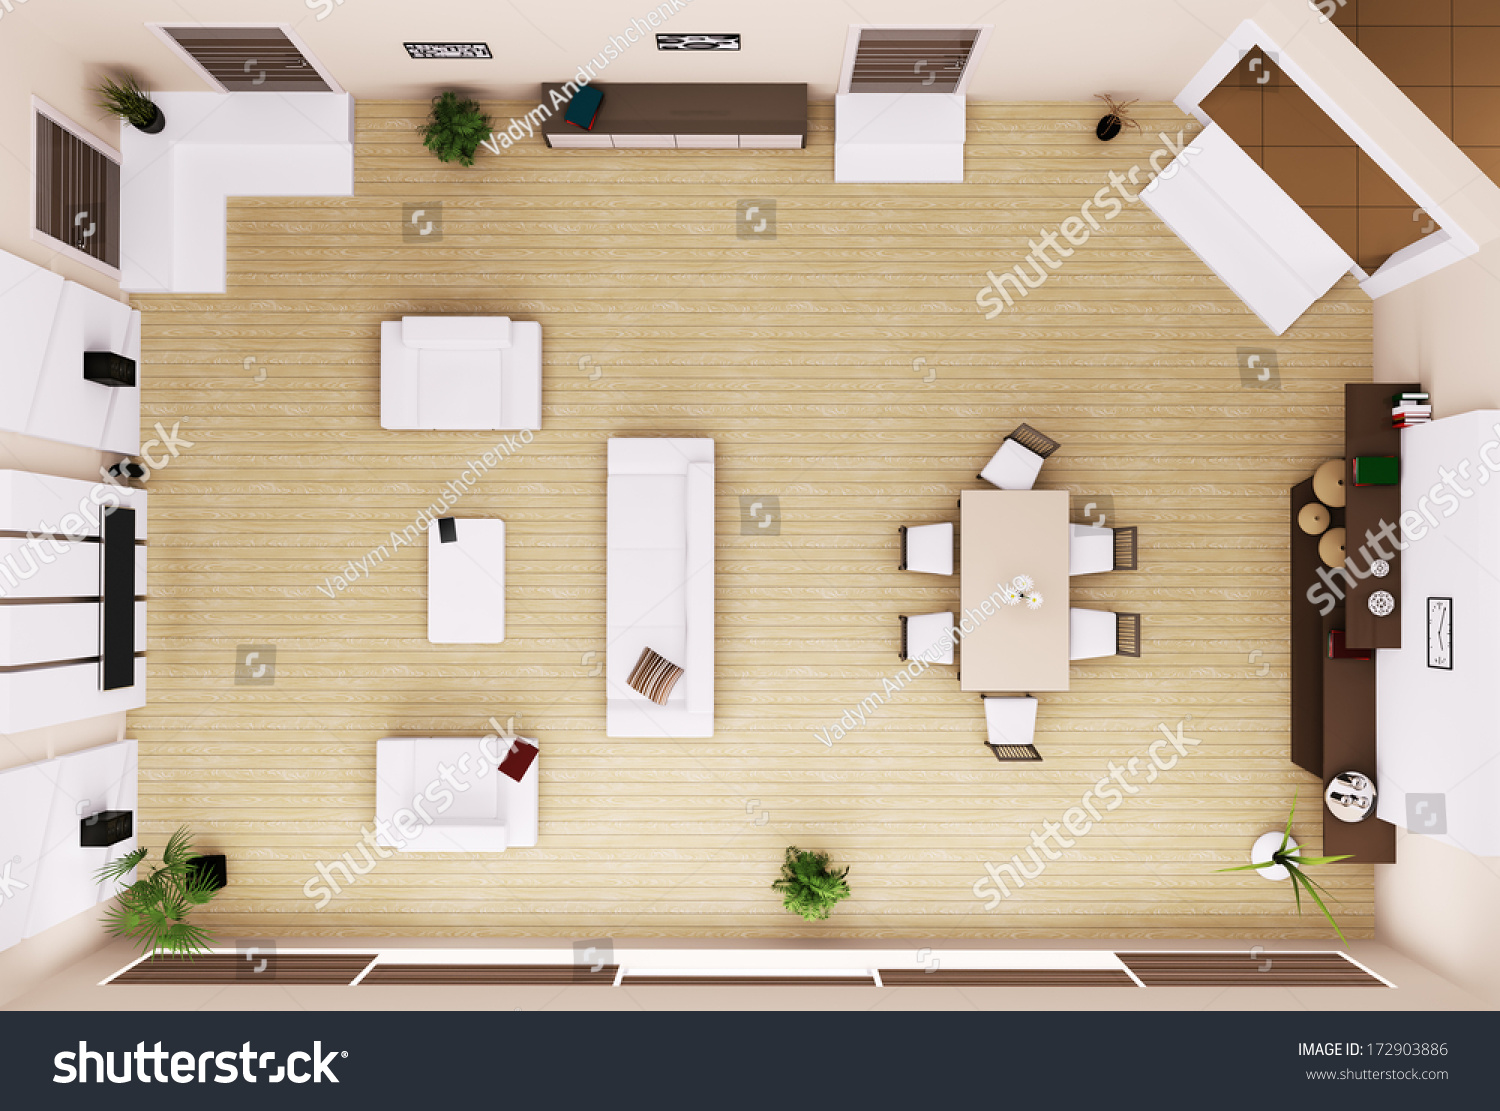 Top view of modern living room interior 3d render stock for Living room 3d view